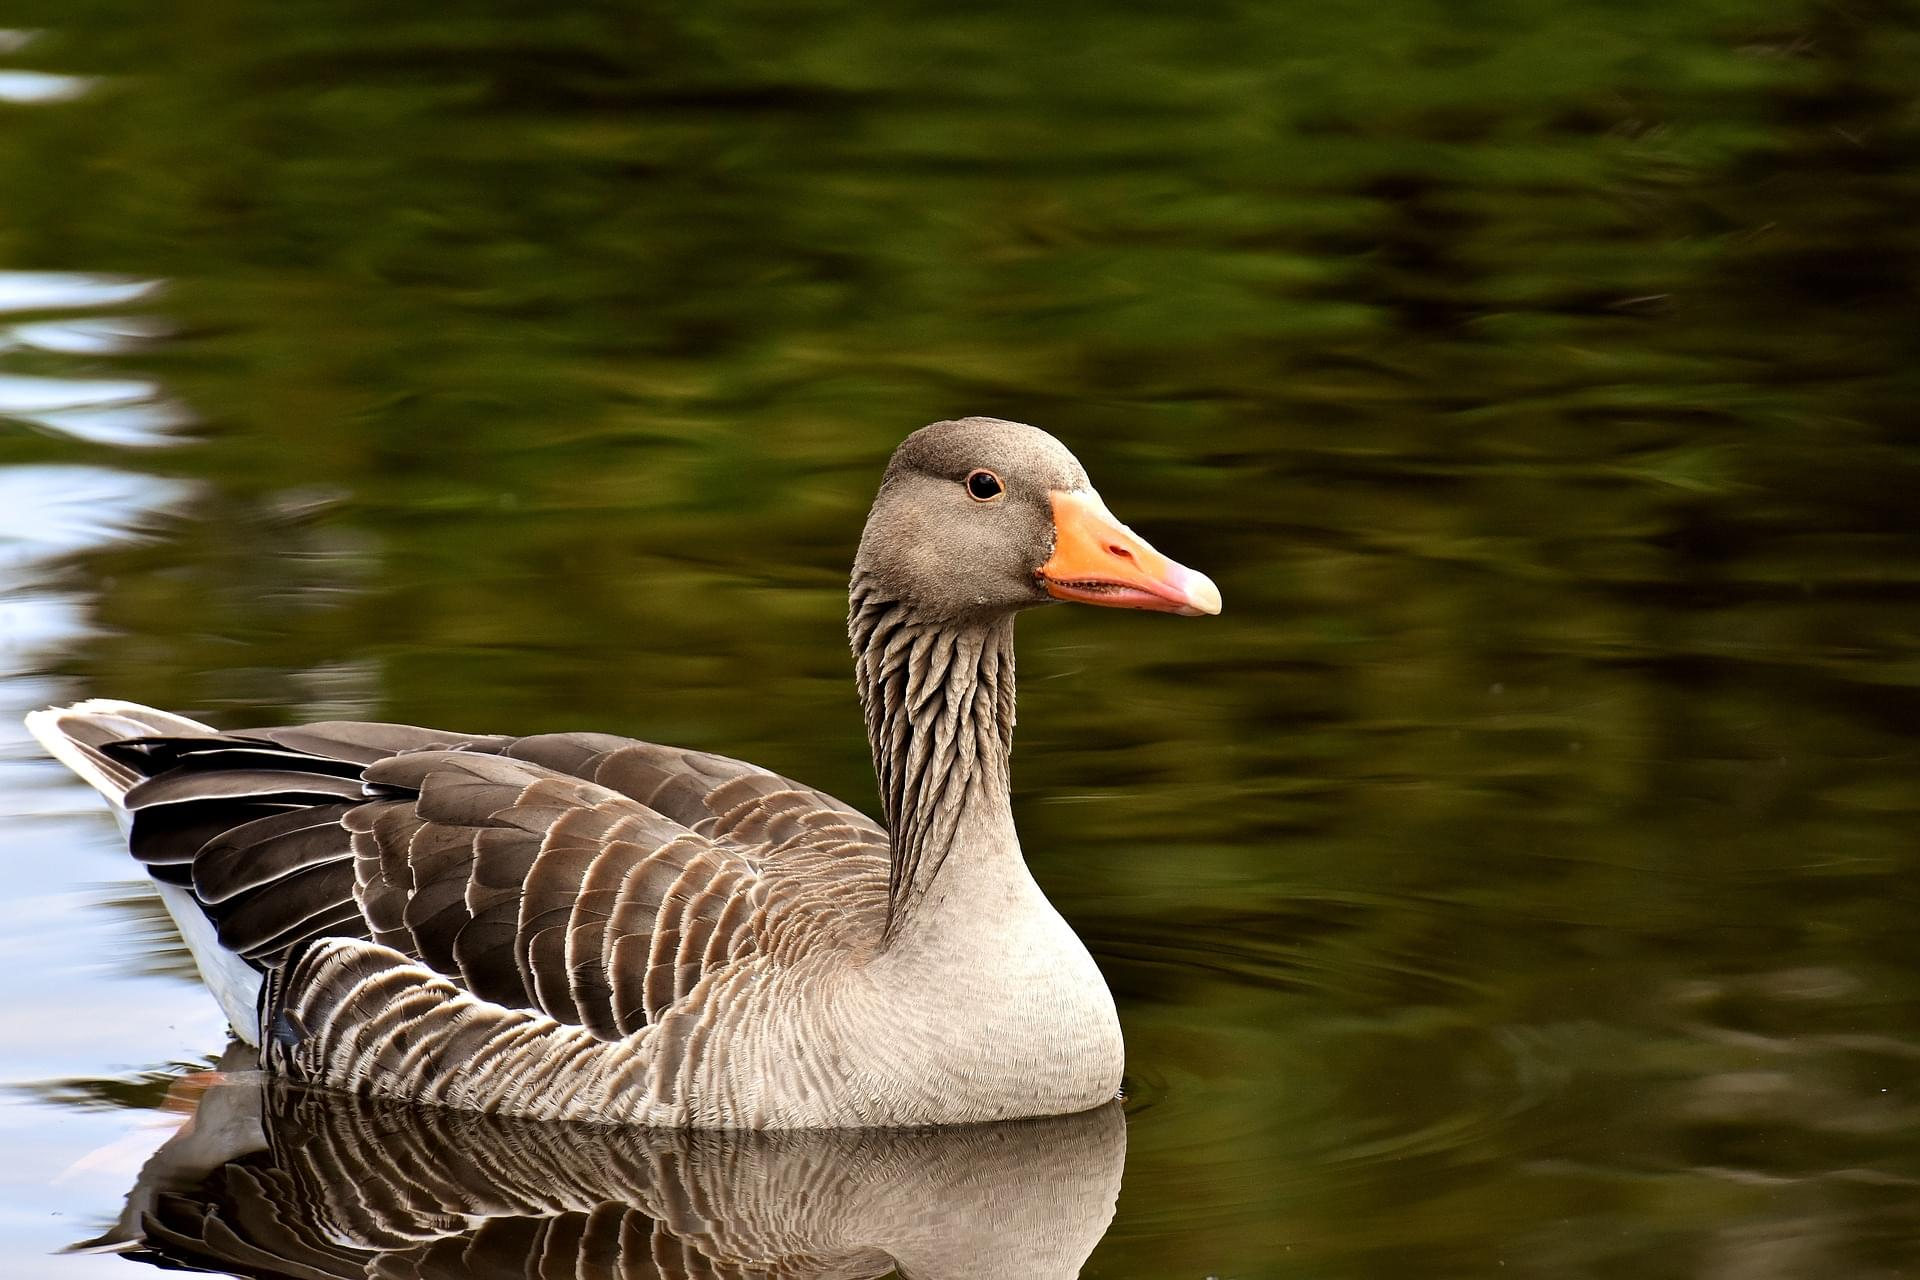 Fishers Police Issue Warning After Goose Attacks Two People In Walmart Parking Lot